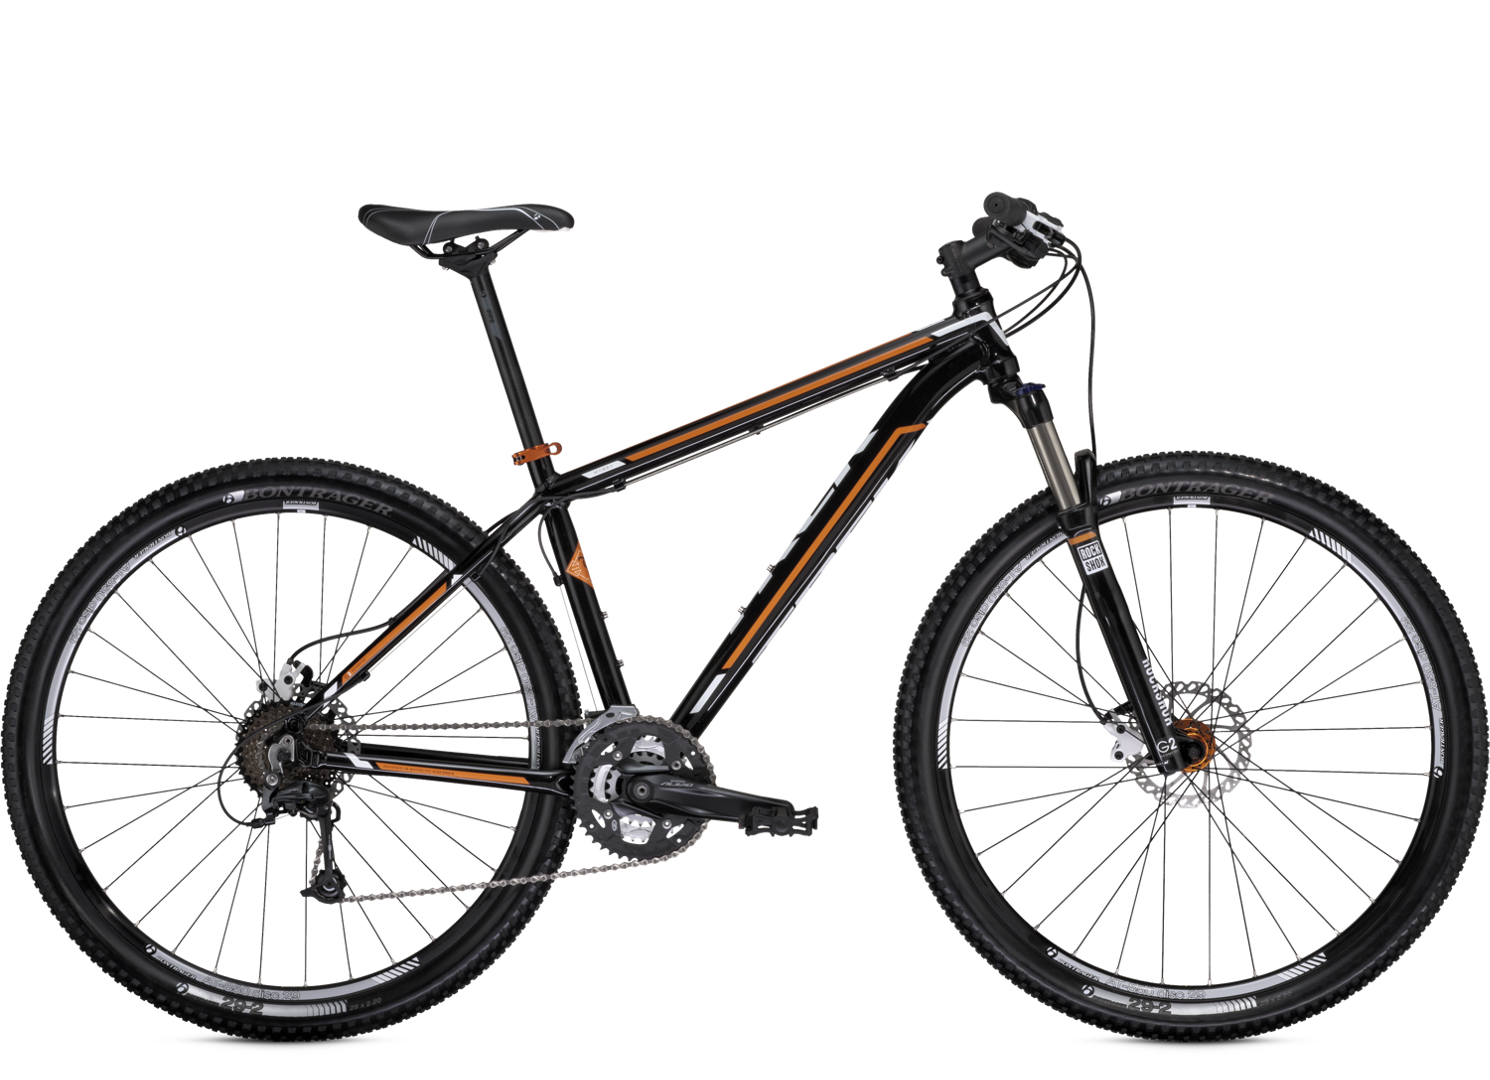 Mountain Bikes - 52021?wid=1490&hei=1080&fit=fit,1&fmt=png-alpha&qlt=80,1&op_usm=0,0,0,0&iccEmbed=0